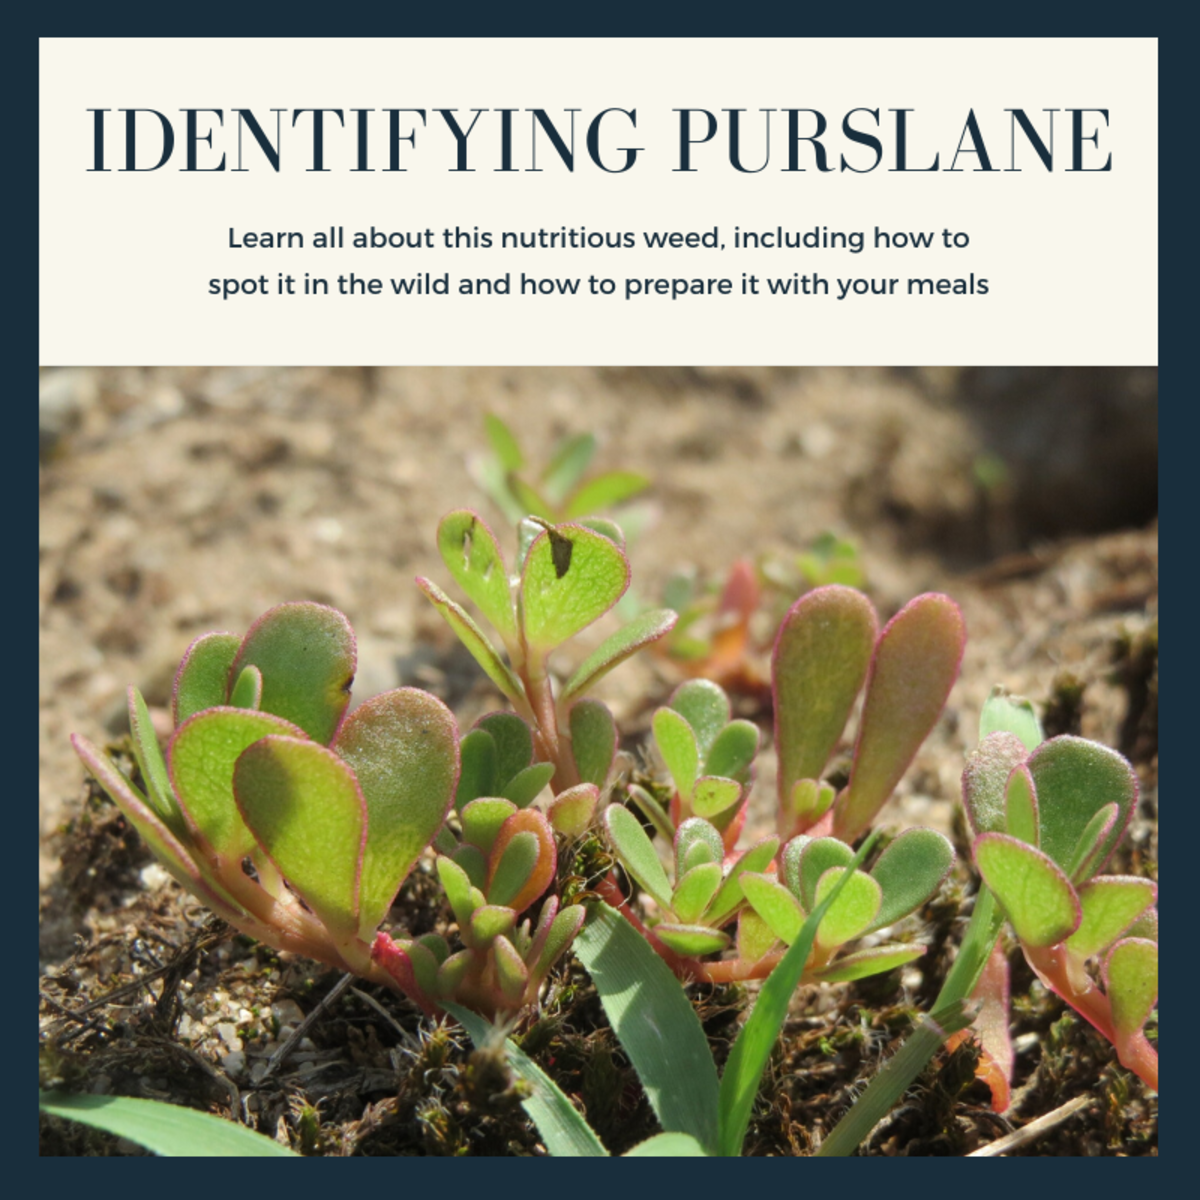 How to Identify Purslane: A Nutritious and Edible Weed